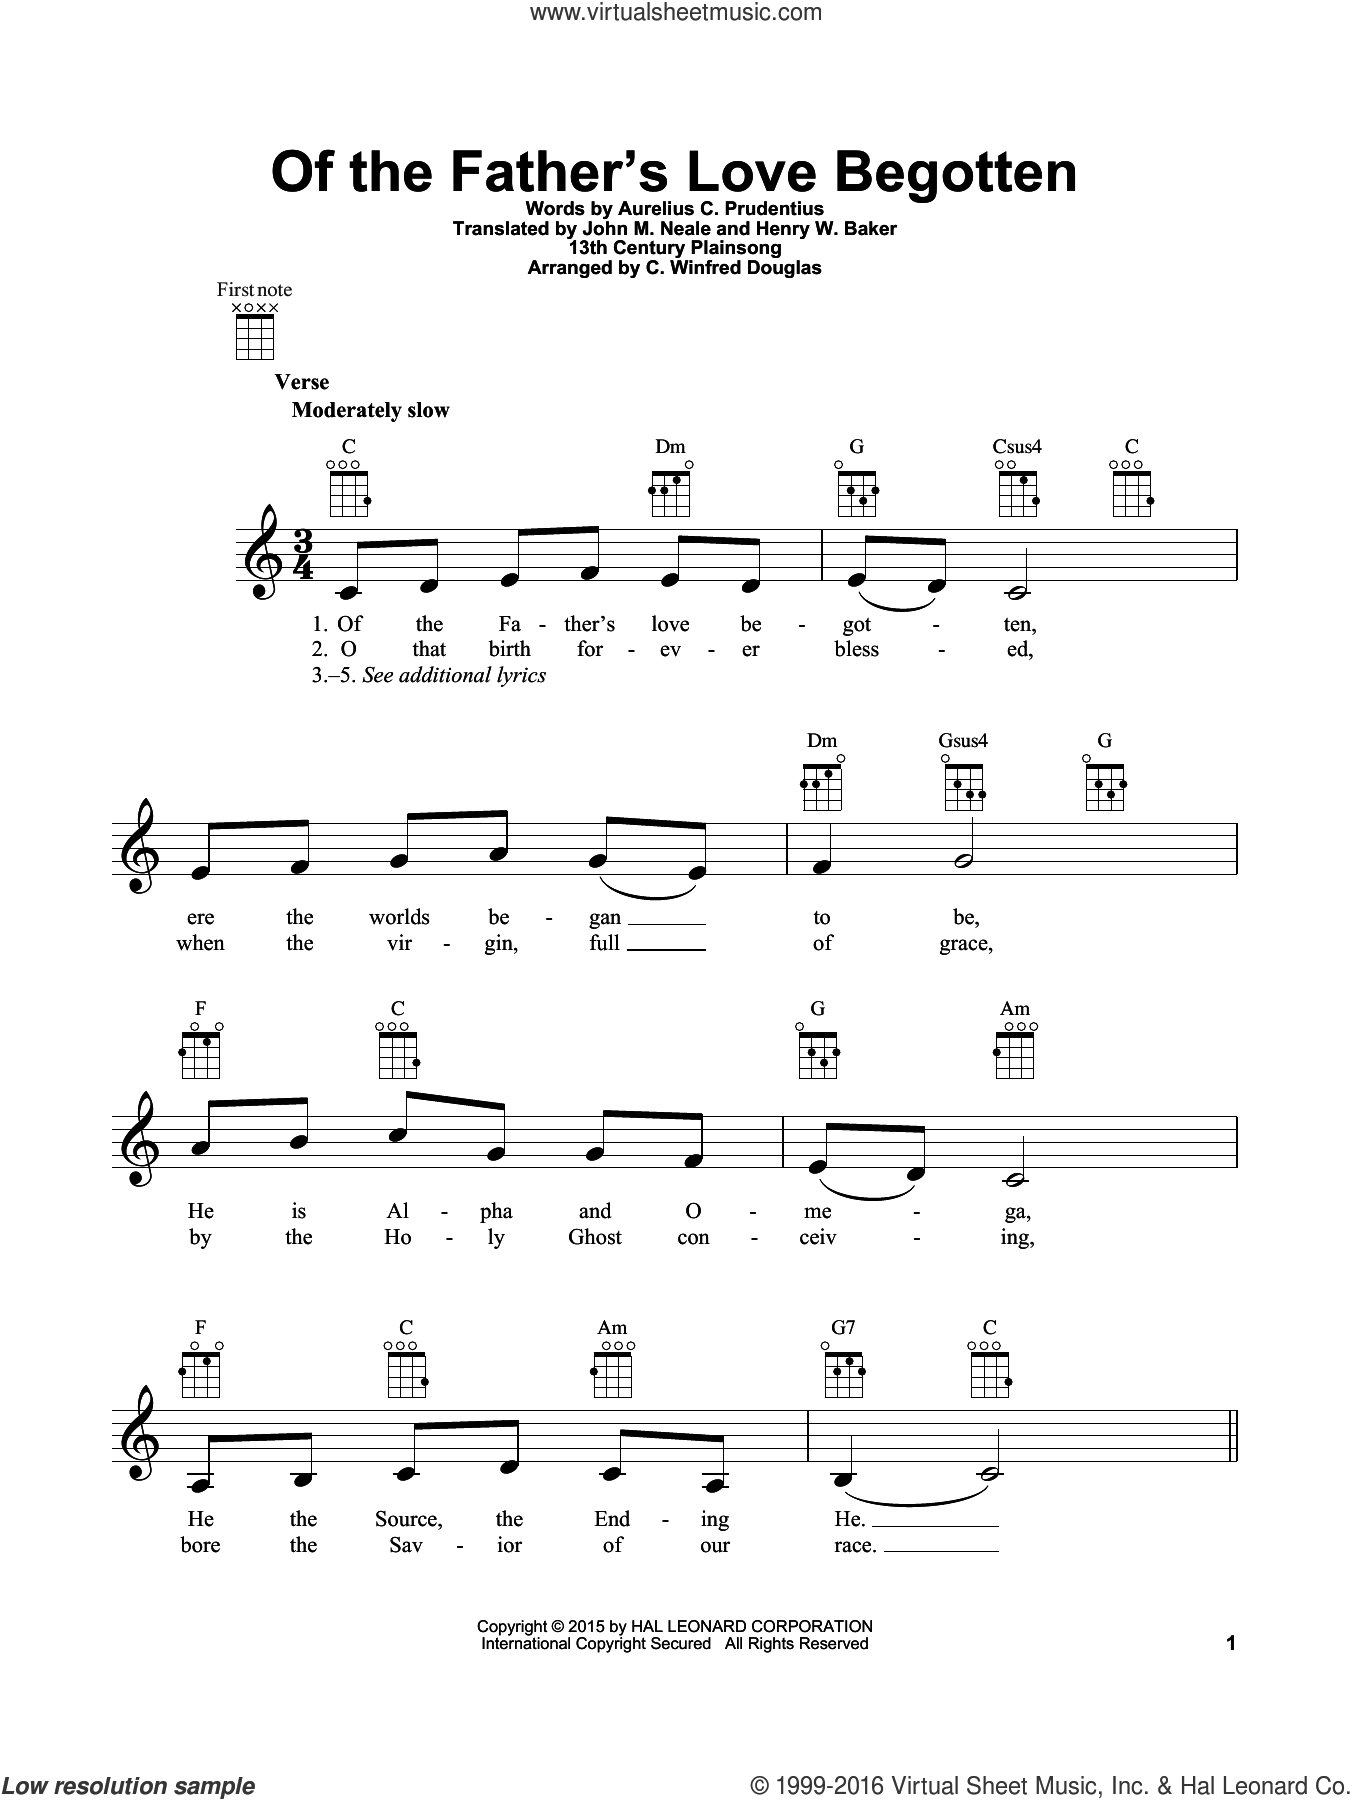 Of The Father's Love Begotten sheet music for ukulele by Aurelius C. Prudentius, 13th Century Plainsong, C. Winfred Douglas, Henry W. Baker and John Mason Neale, intermediate skill level